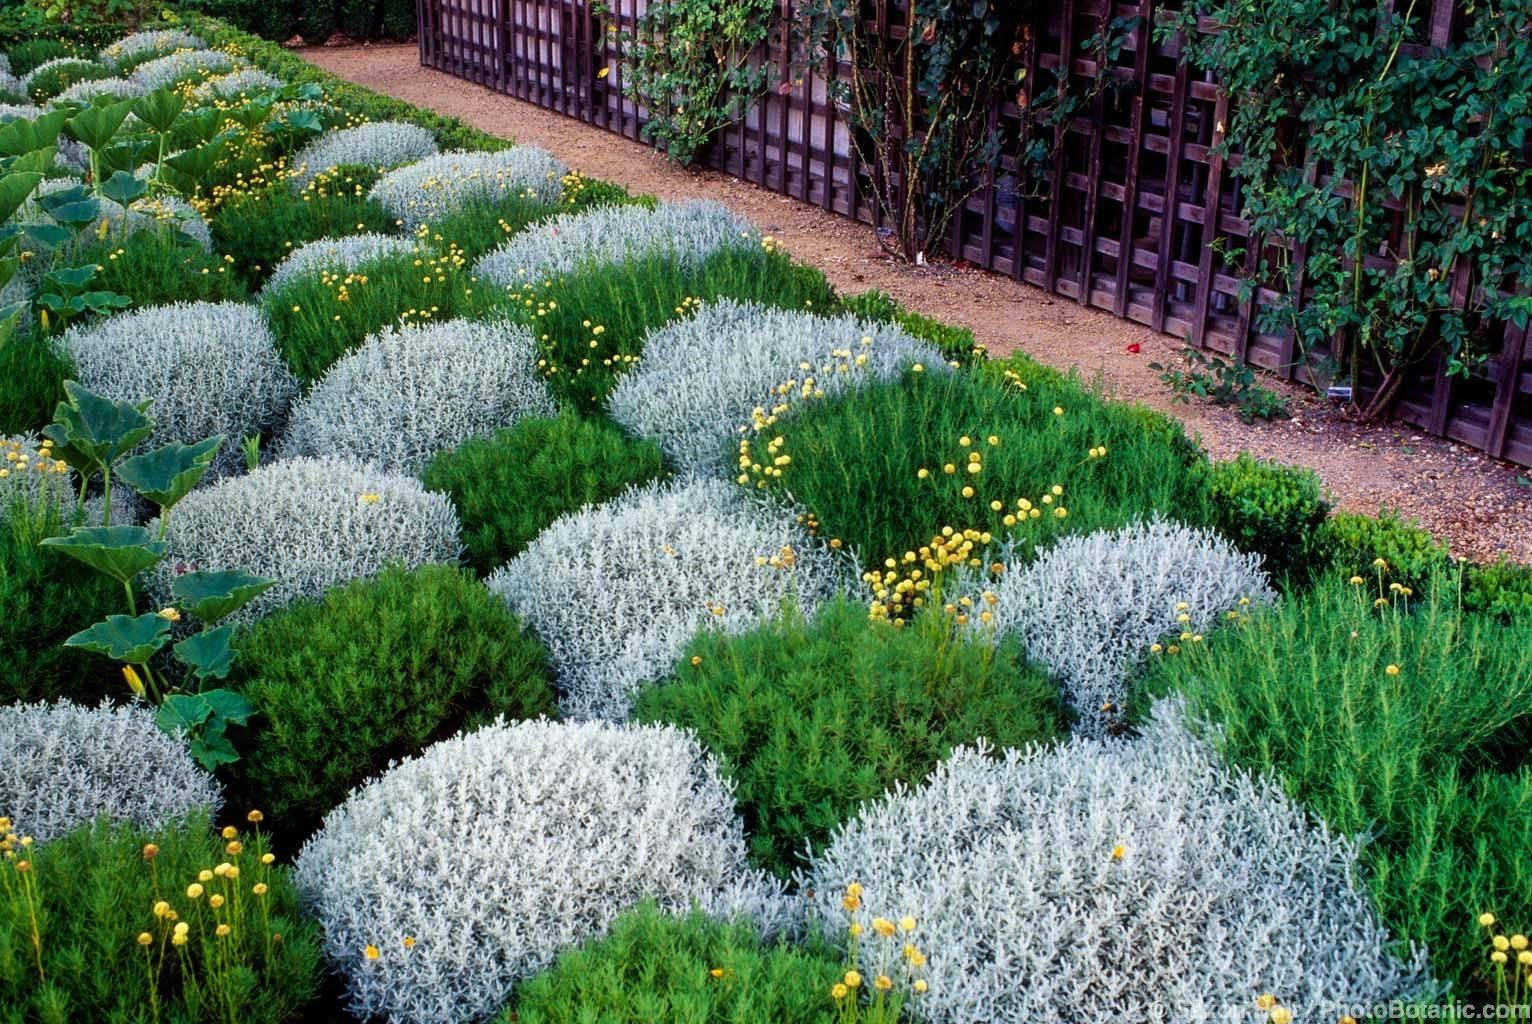 Waterwise Garden Design waterwise garden checkerboard planting of green and silver